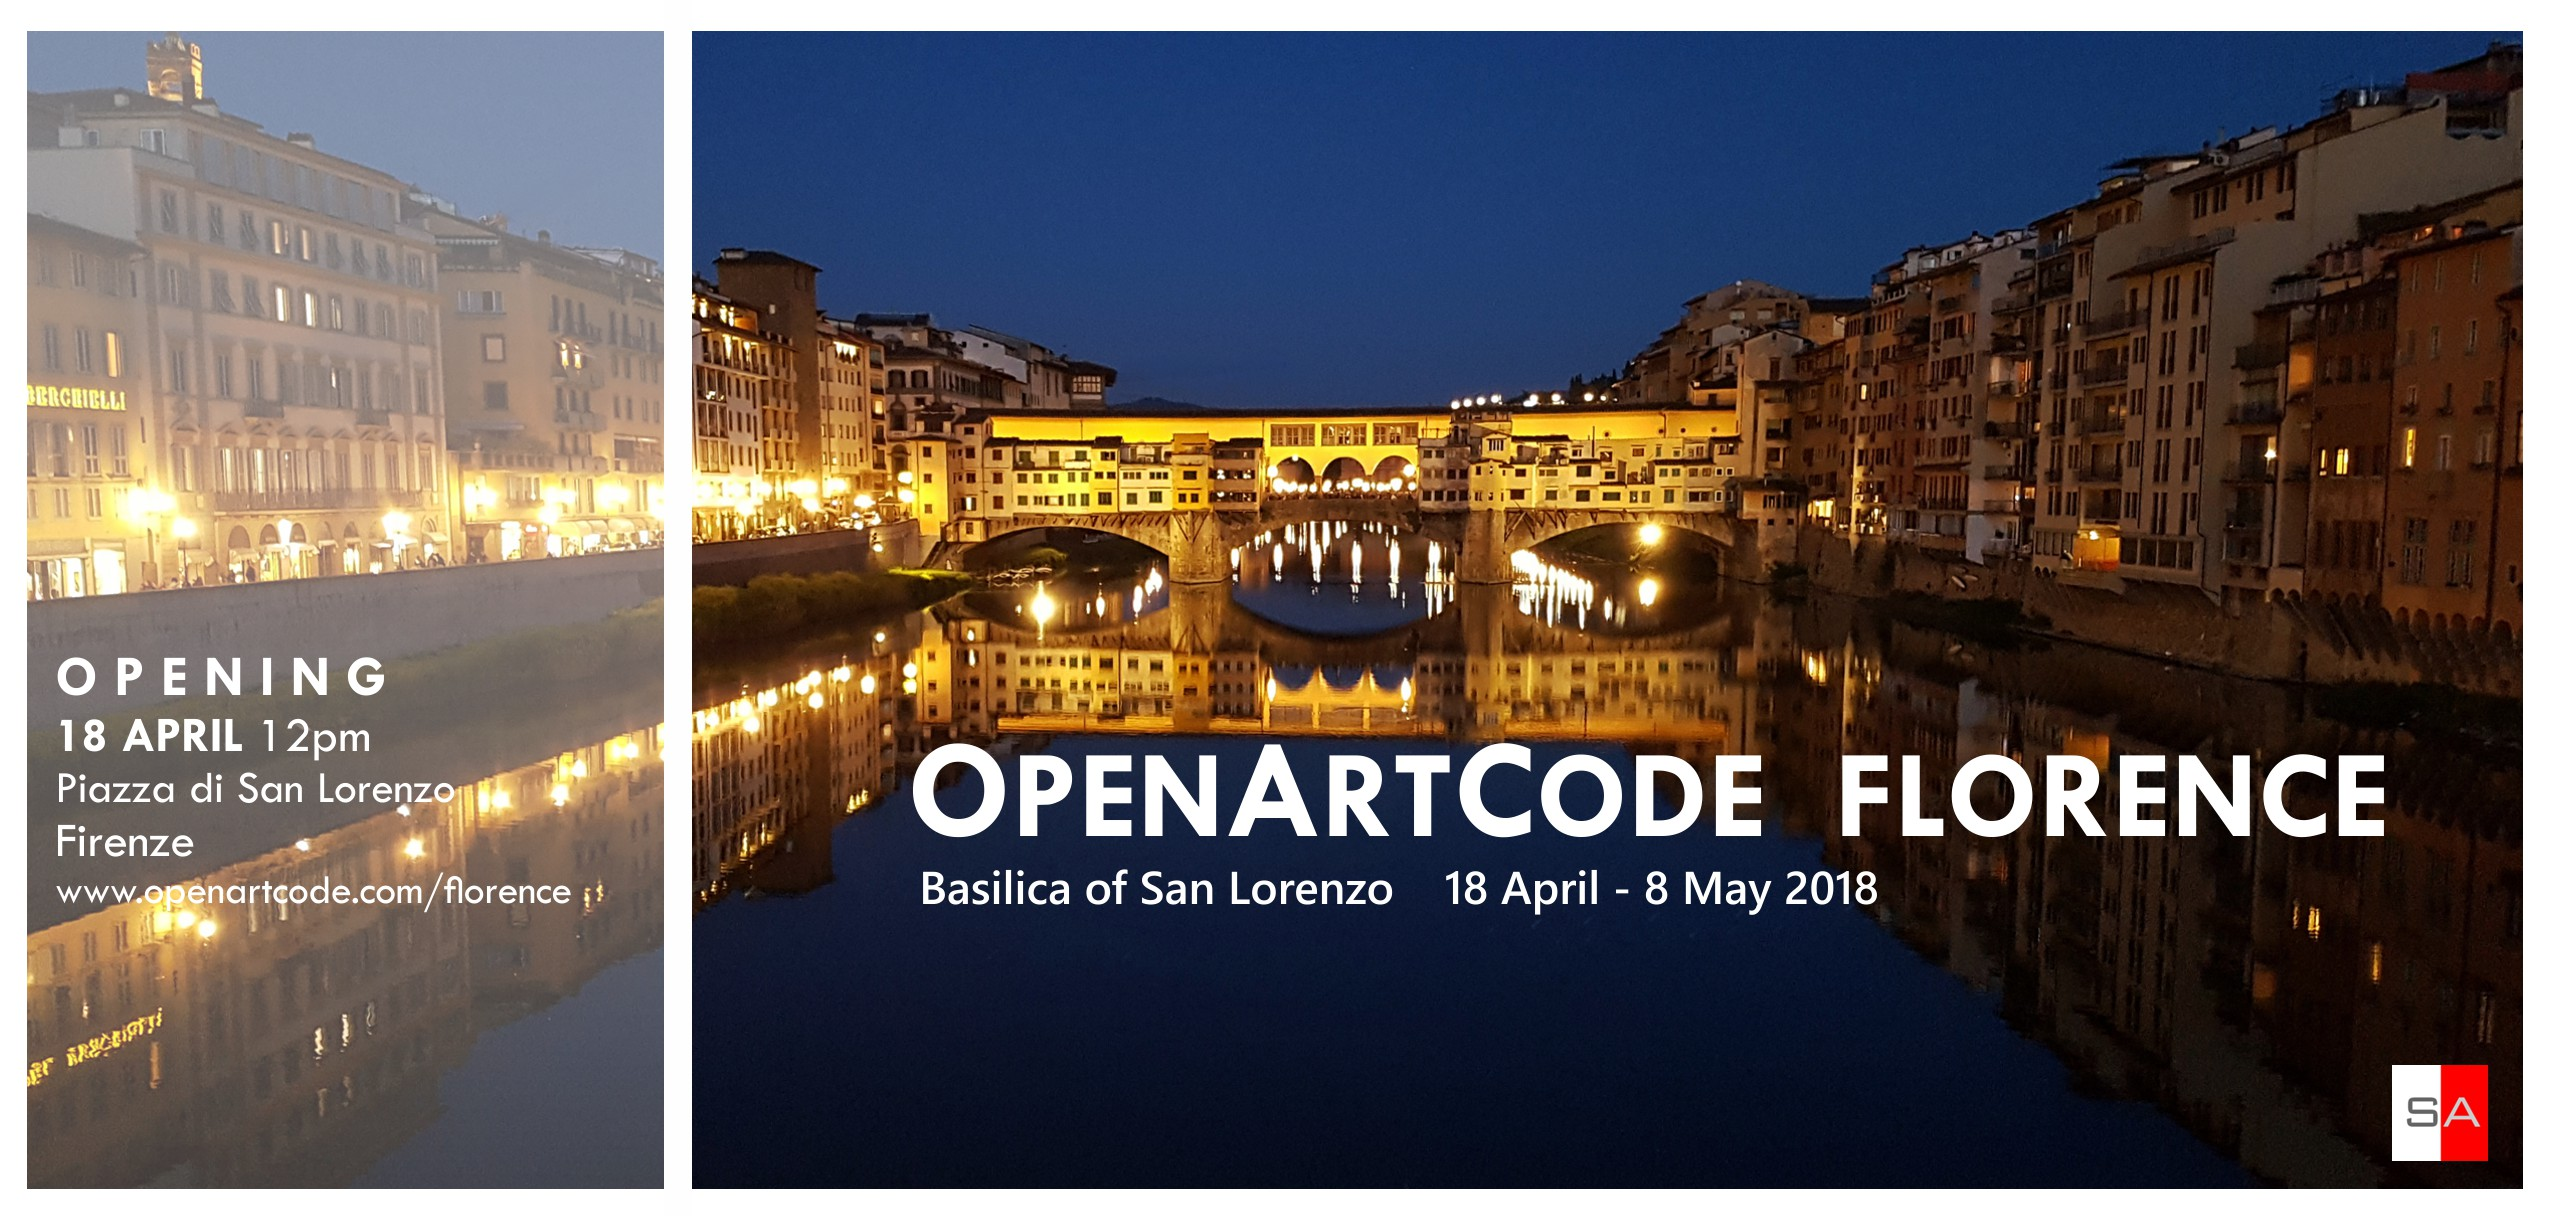 OpenArtCode Florence invitation